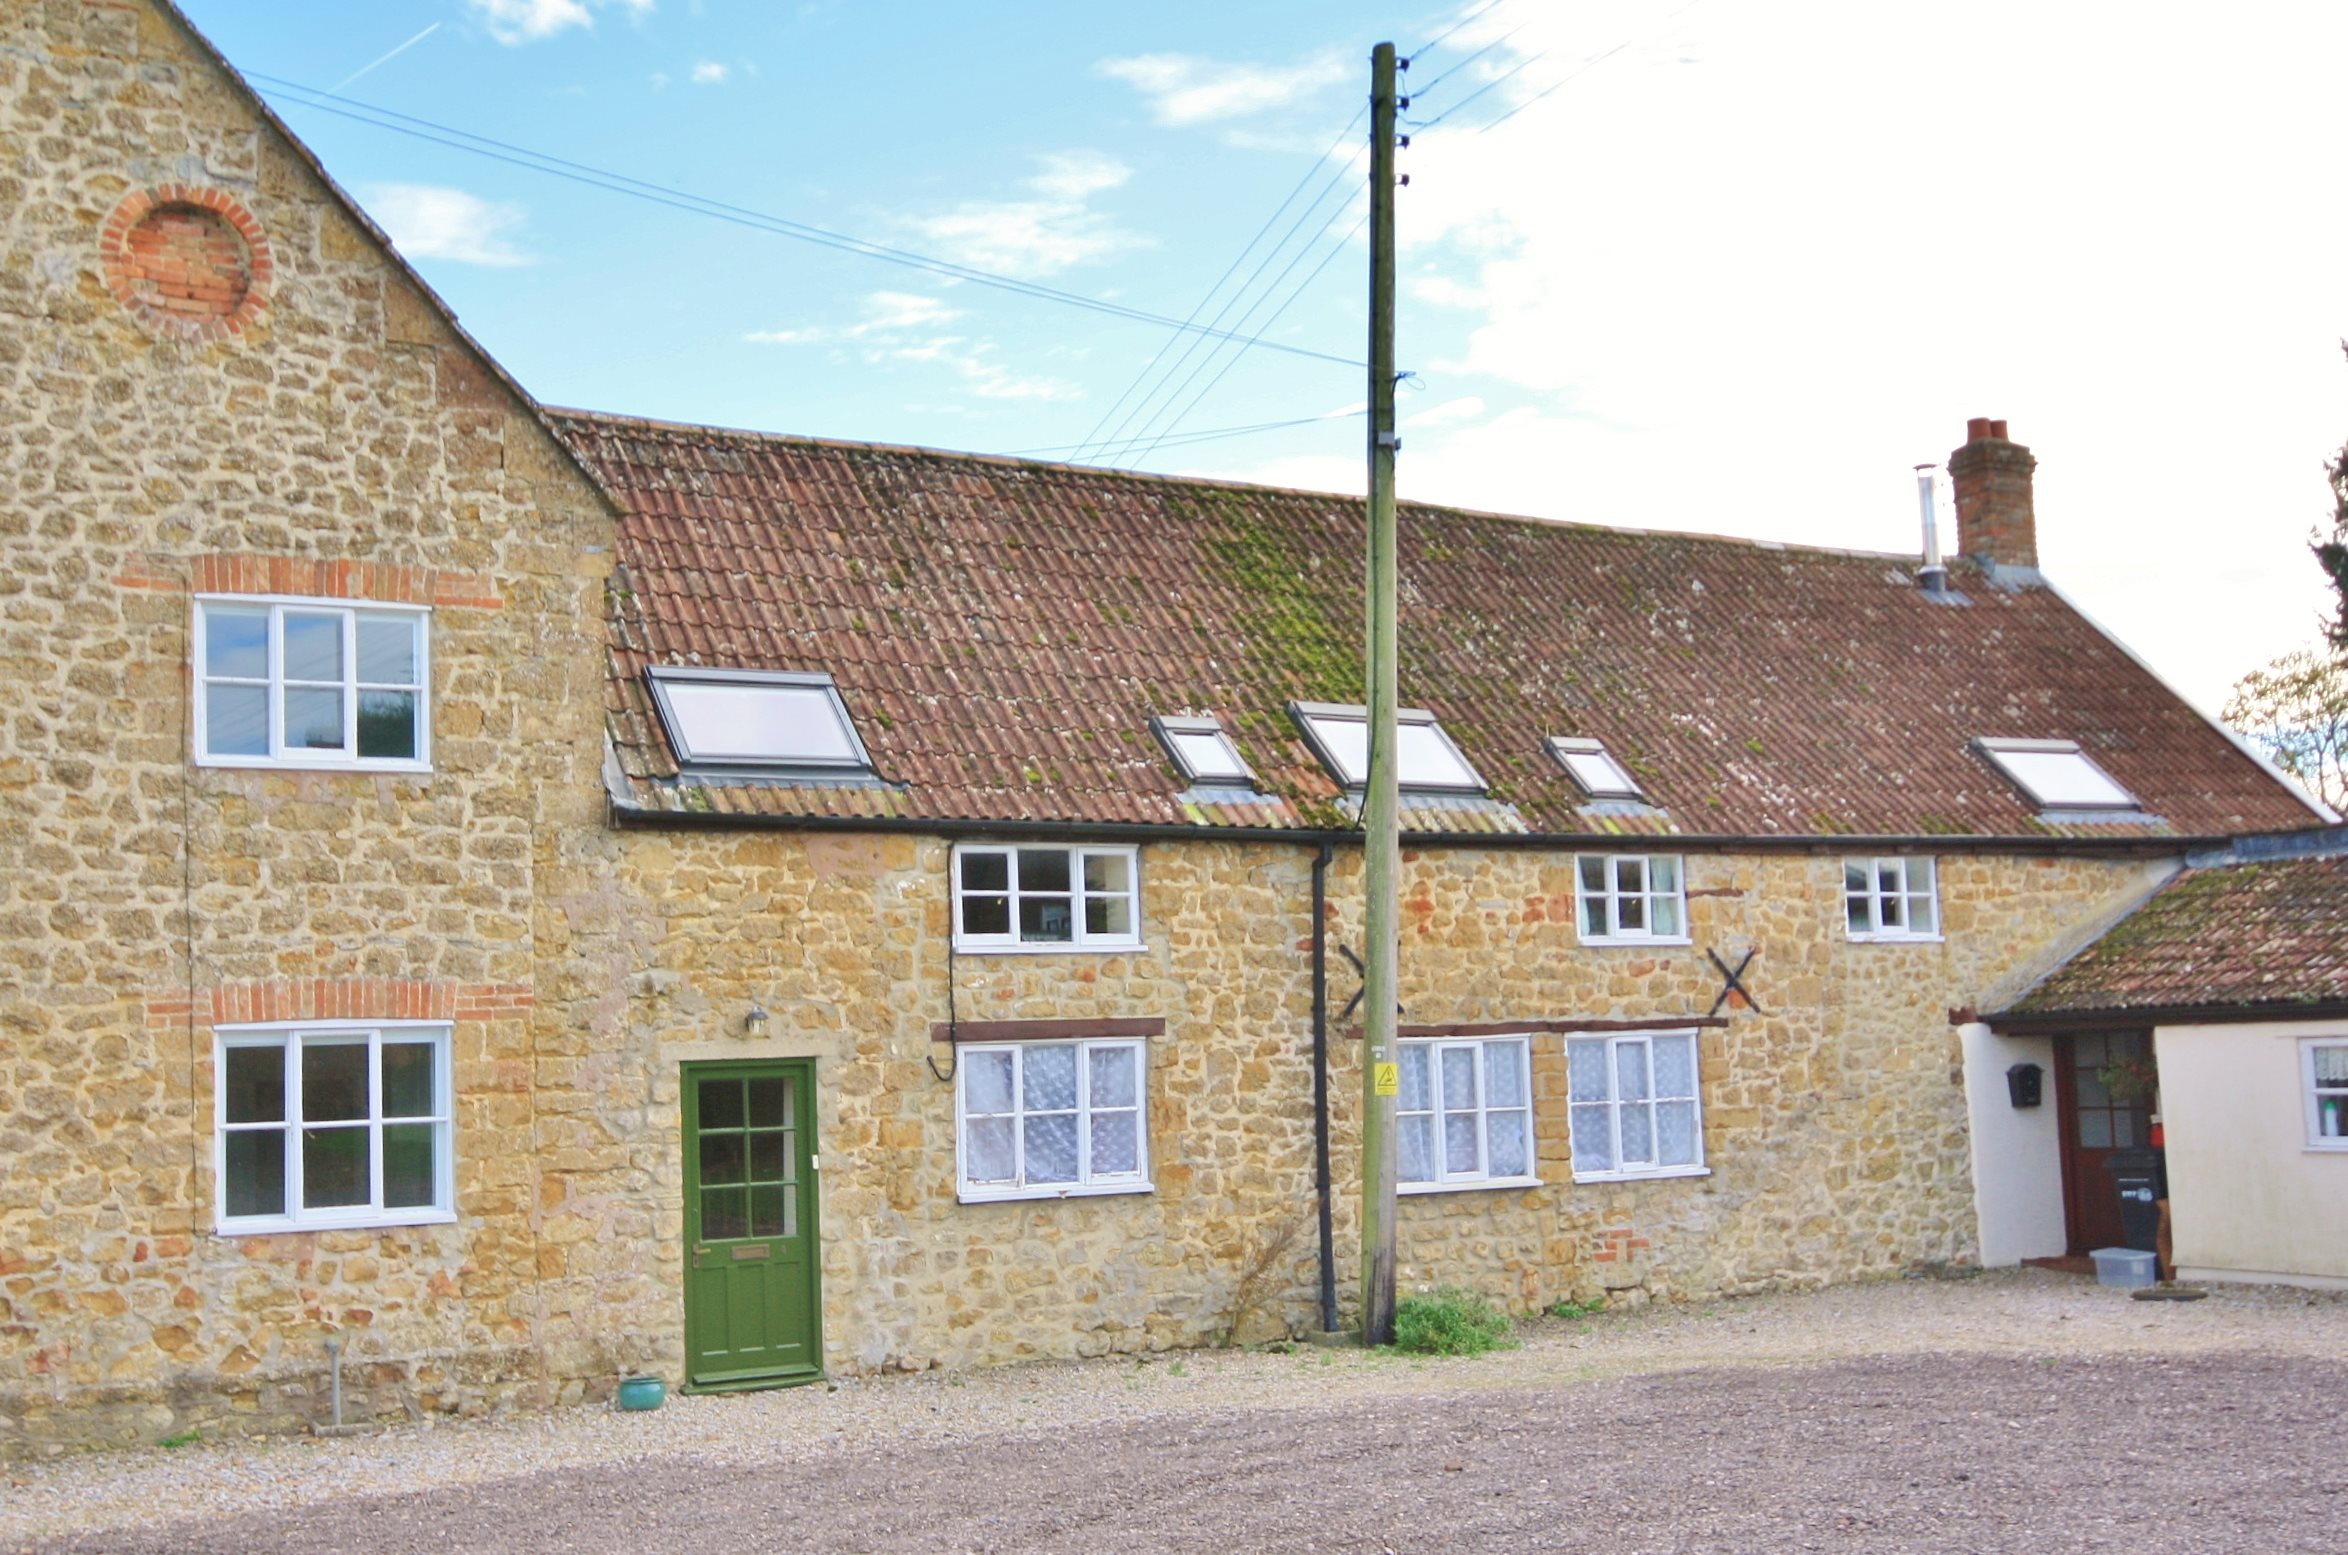 Collins Farm, Horton Cross, Ilminster